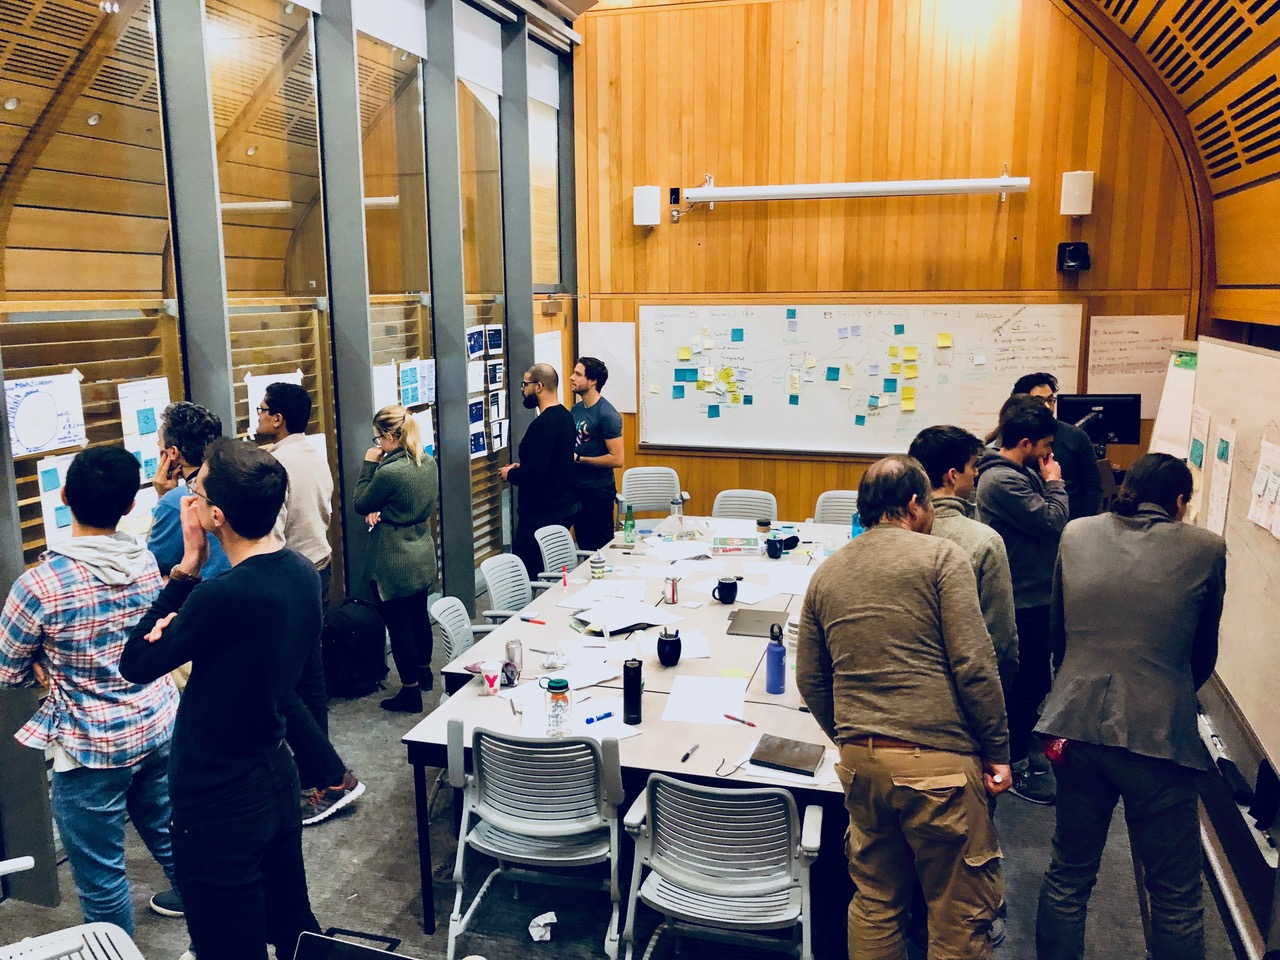 """Idea evaluation - After the brainstorming session, participants walked around the room to check out each other's sketches and ideas. Through a collective decision-making process called """"heatmapping,"""" they identified the strongest ideas."""